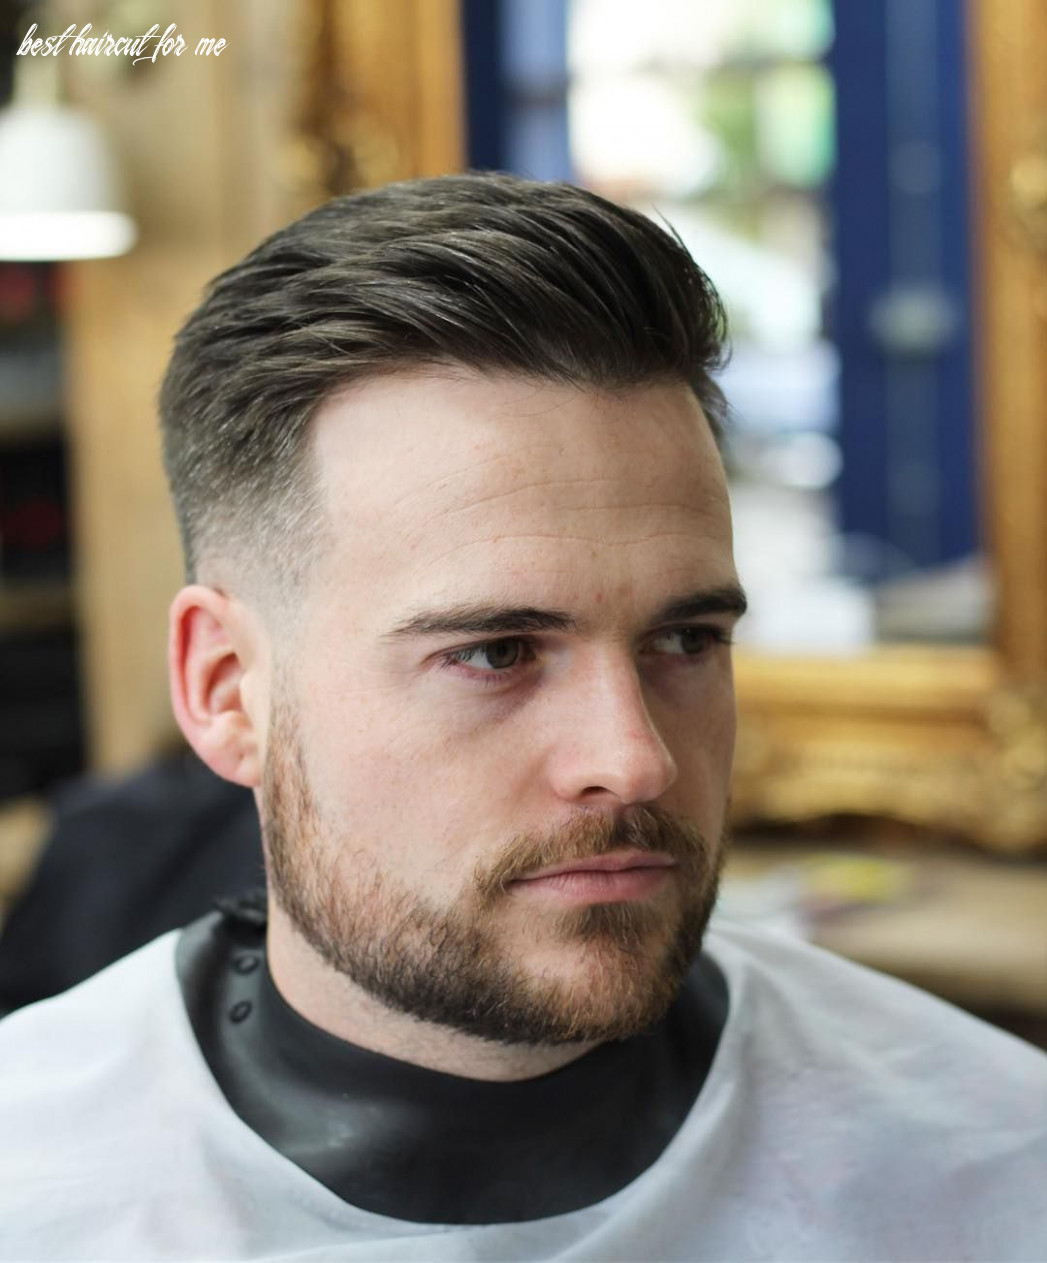 Pin on best barbers map best haircut for me